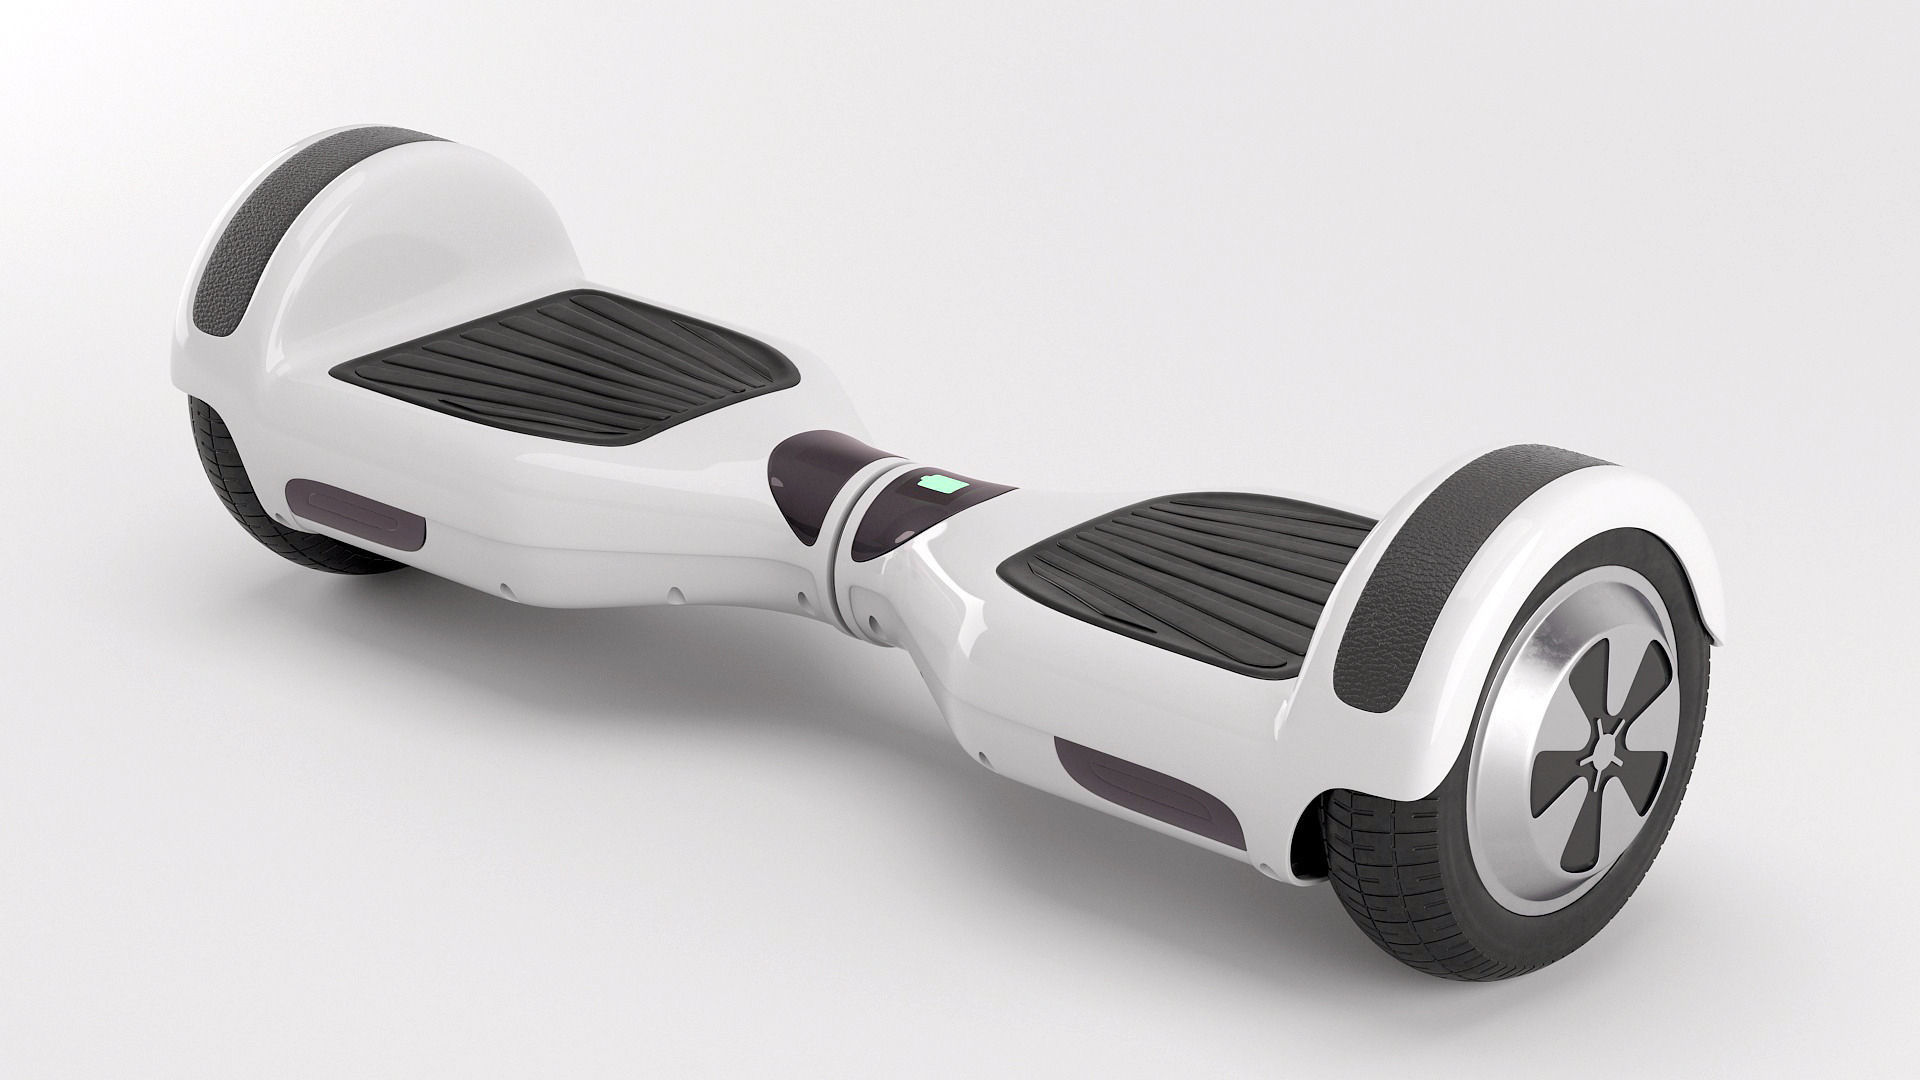 Two Wheel Electric Unicycle Scooter Model Max Obj Mtl Fbx 1